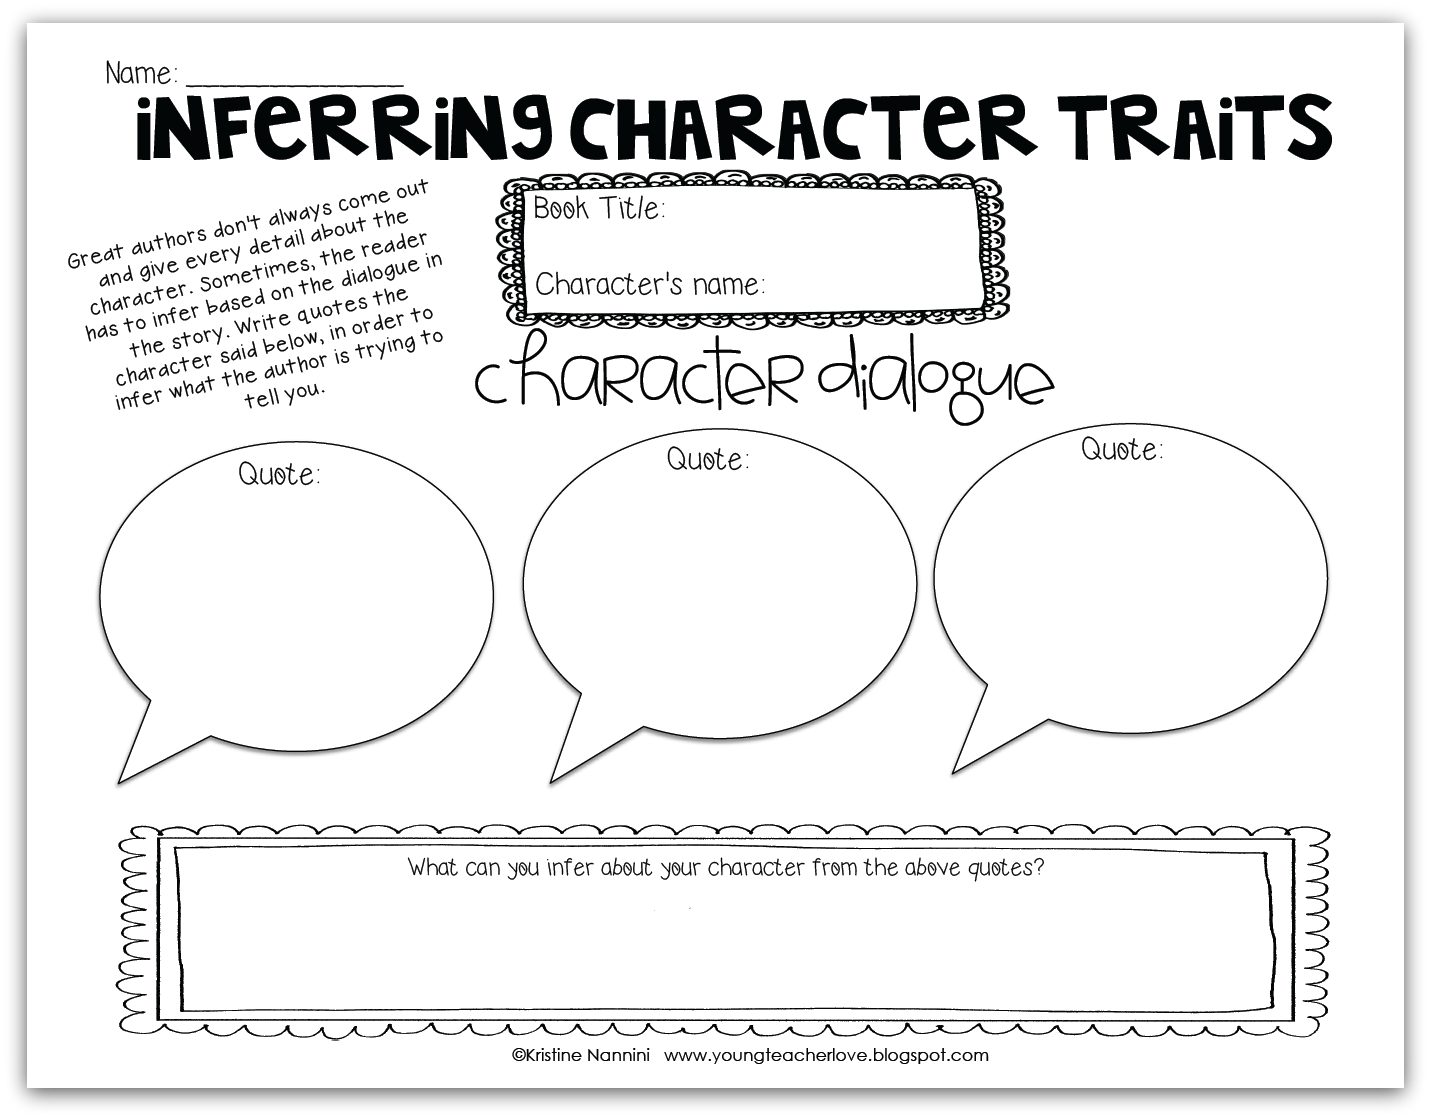 Inferring Character Traits Through Dialogue (Plus a Free Graphic Organizer)  - Young Teacher Love   Free graphic organizers [ 1119 x 1431 Pixel ]